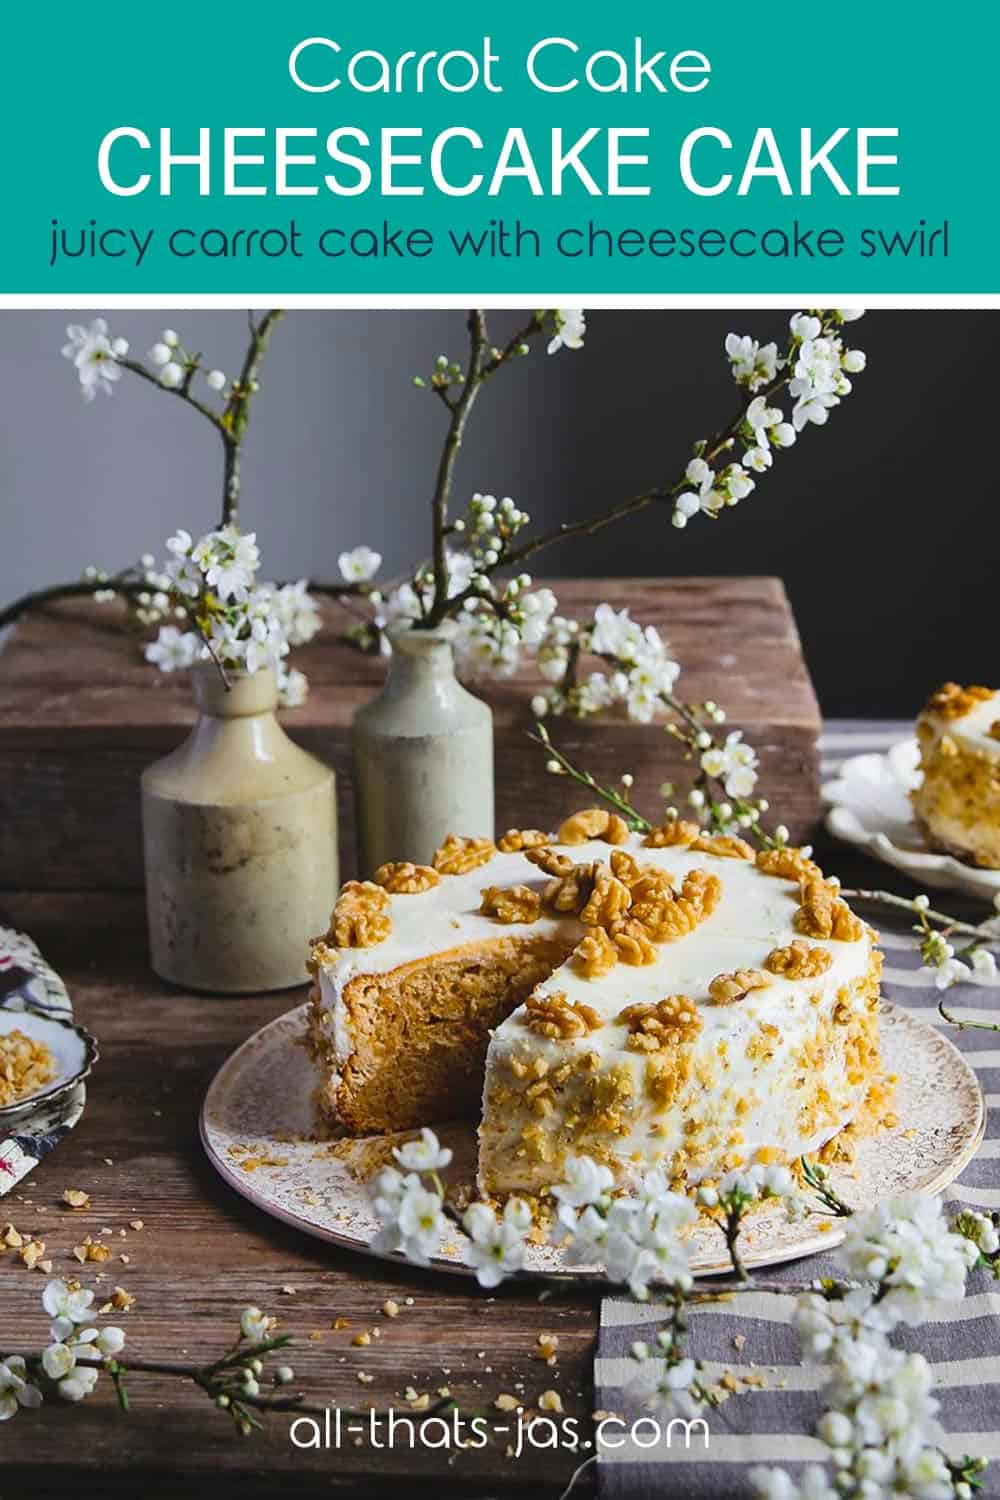 Carrot cake cheesecake cake sitting on a table with spring settings and with text overlay.